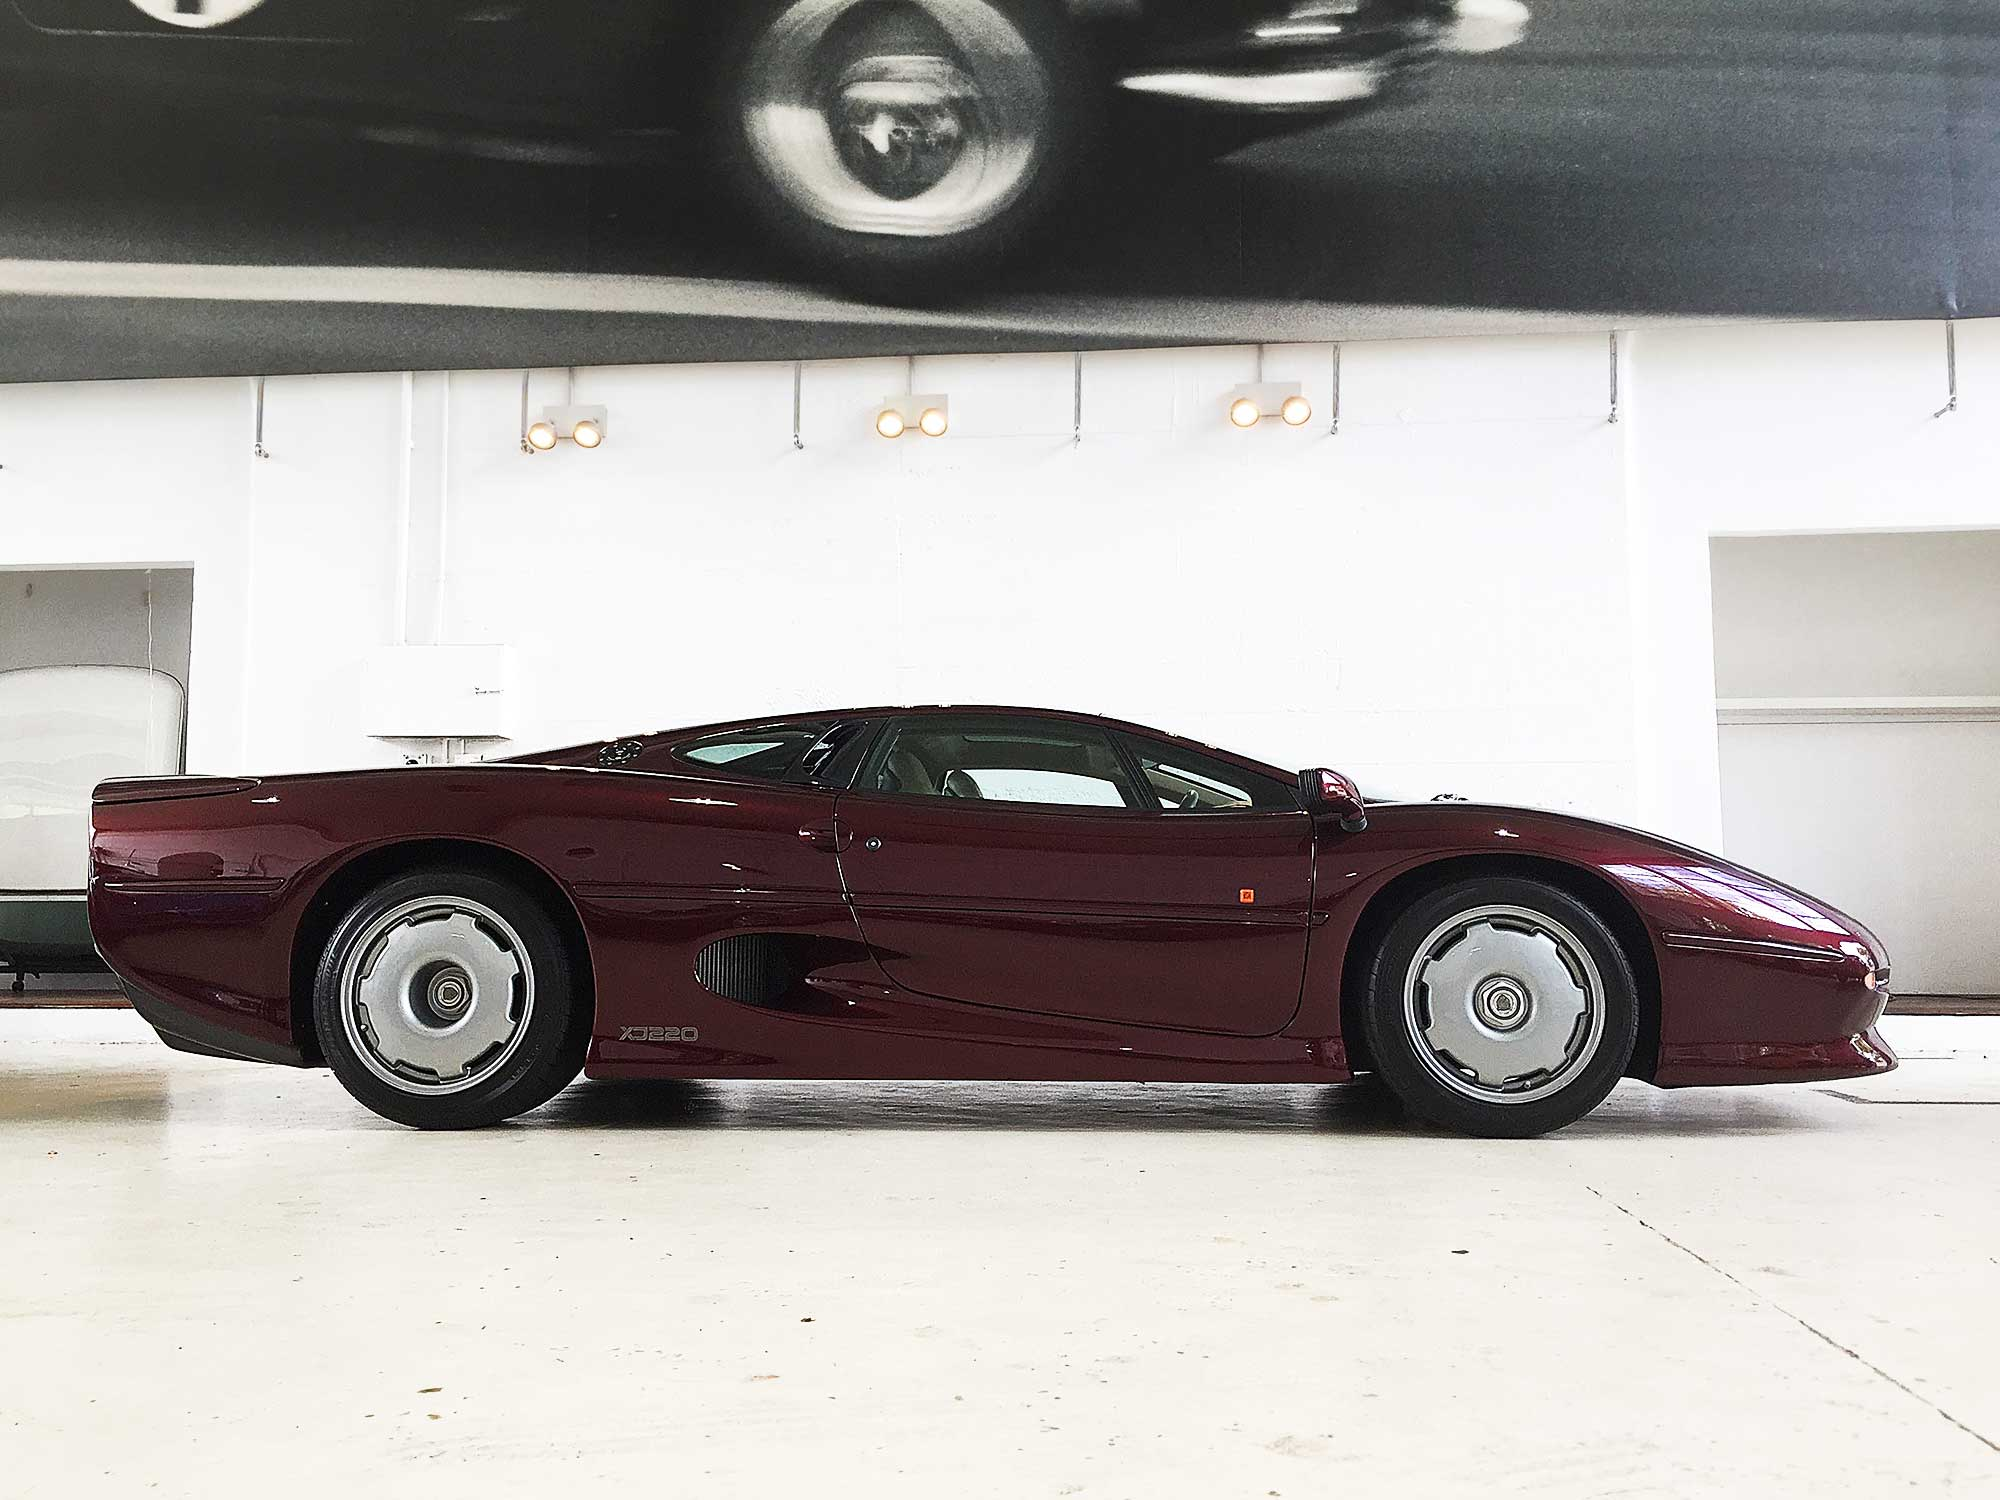 Deep red 90s XJ220 Wine red